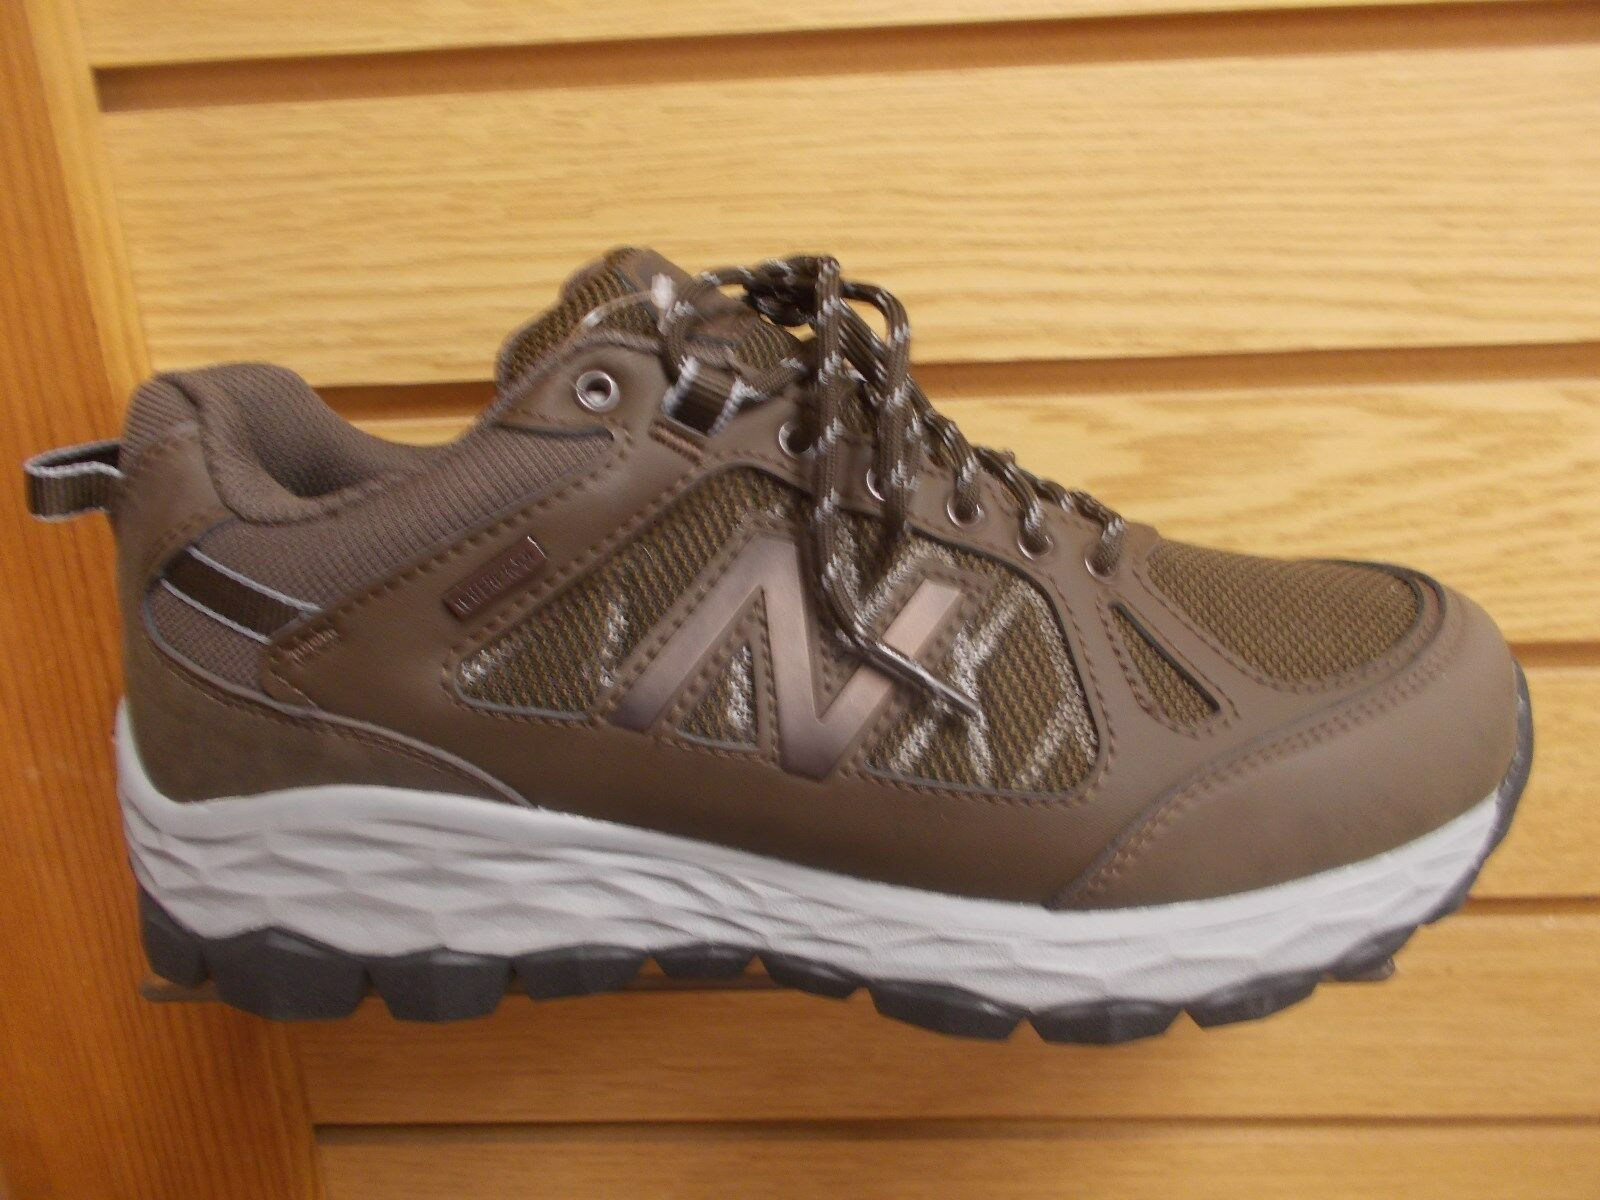 NEW BALANCE MW1350 WC MEN'S  WATERPROOF WALKING SHOES 4E X- WIDE MULTI SIZES